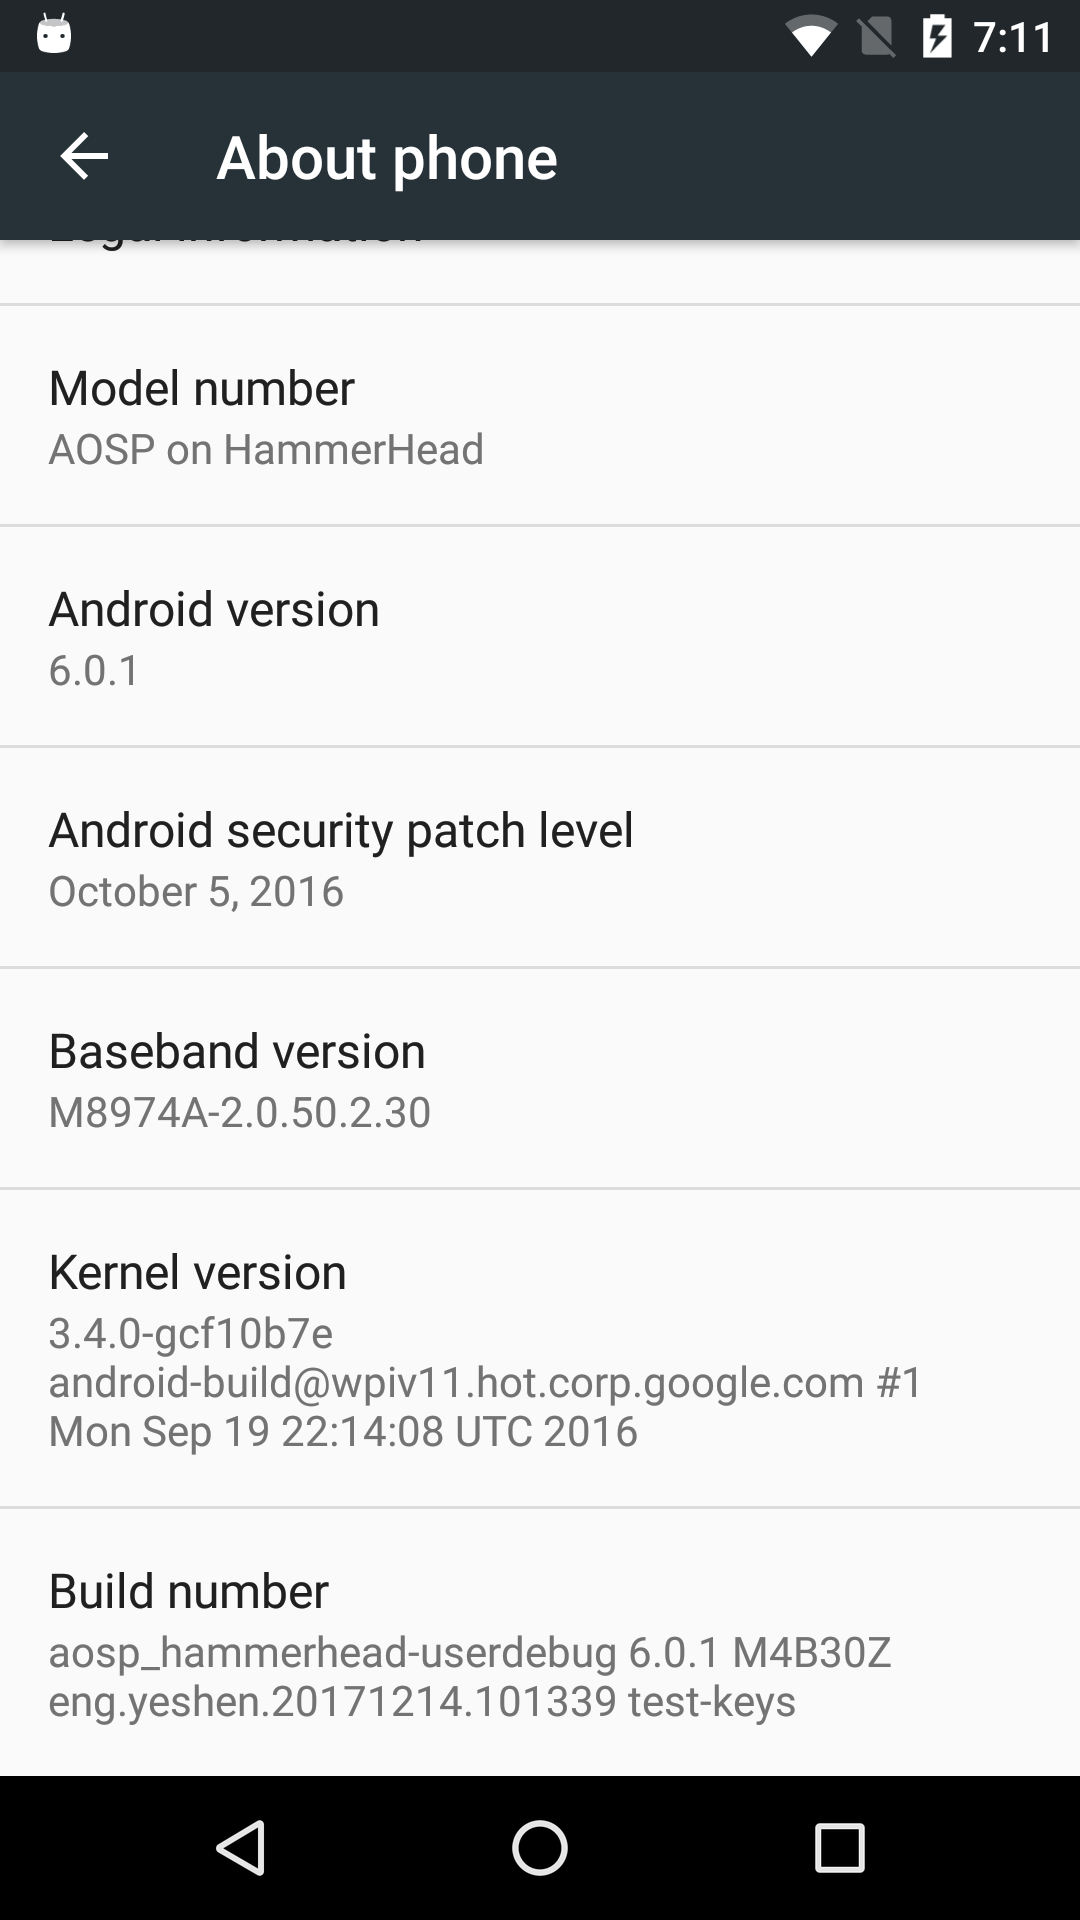 Building and Flashing AOSP for Device Nexus 5 hammerhead